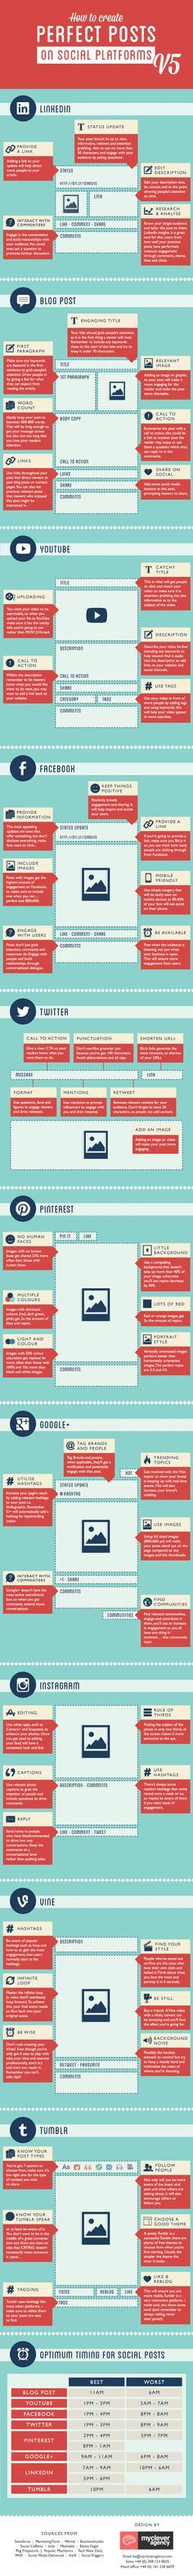 373 best SOCIAL MEDIA MARKETING images on Pinterest Social media - social media calendar template